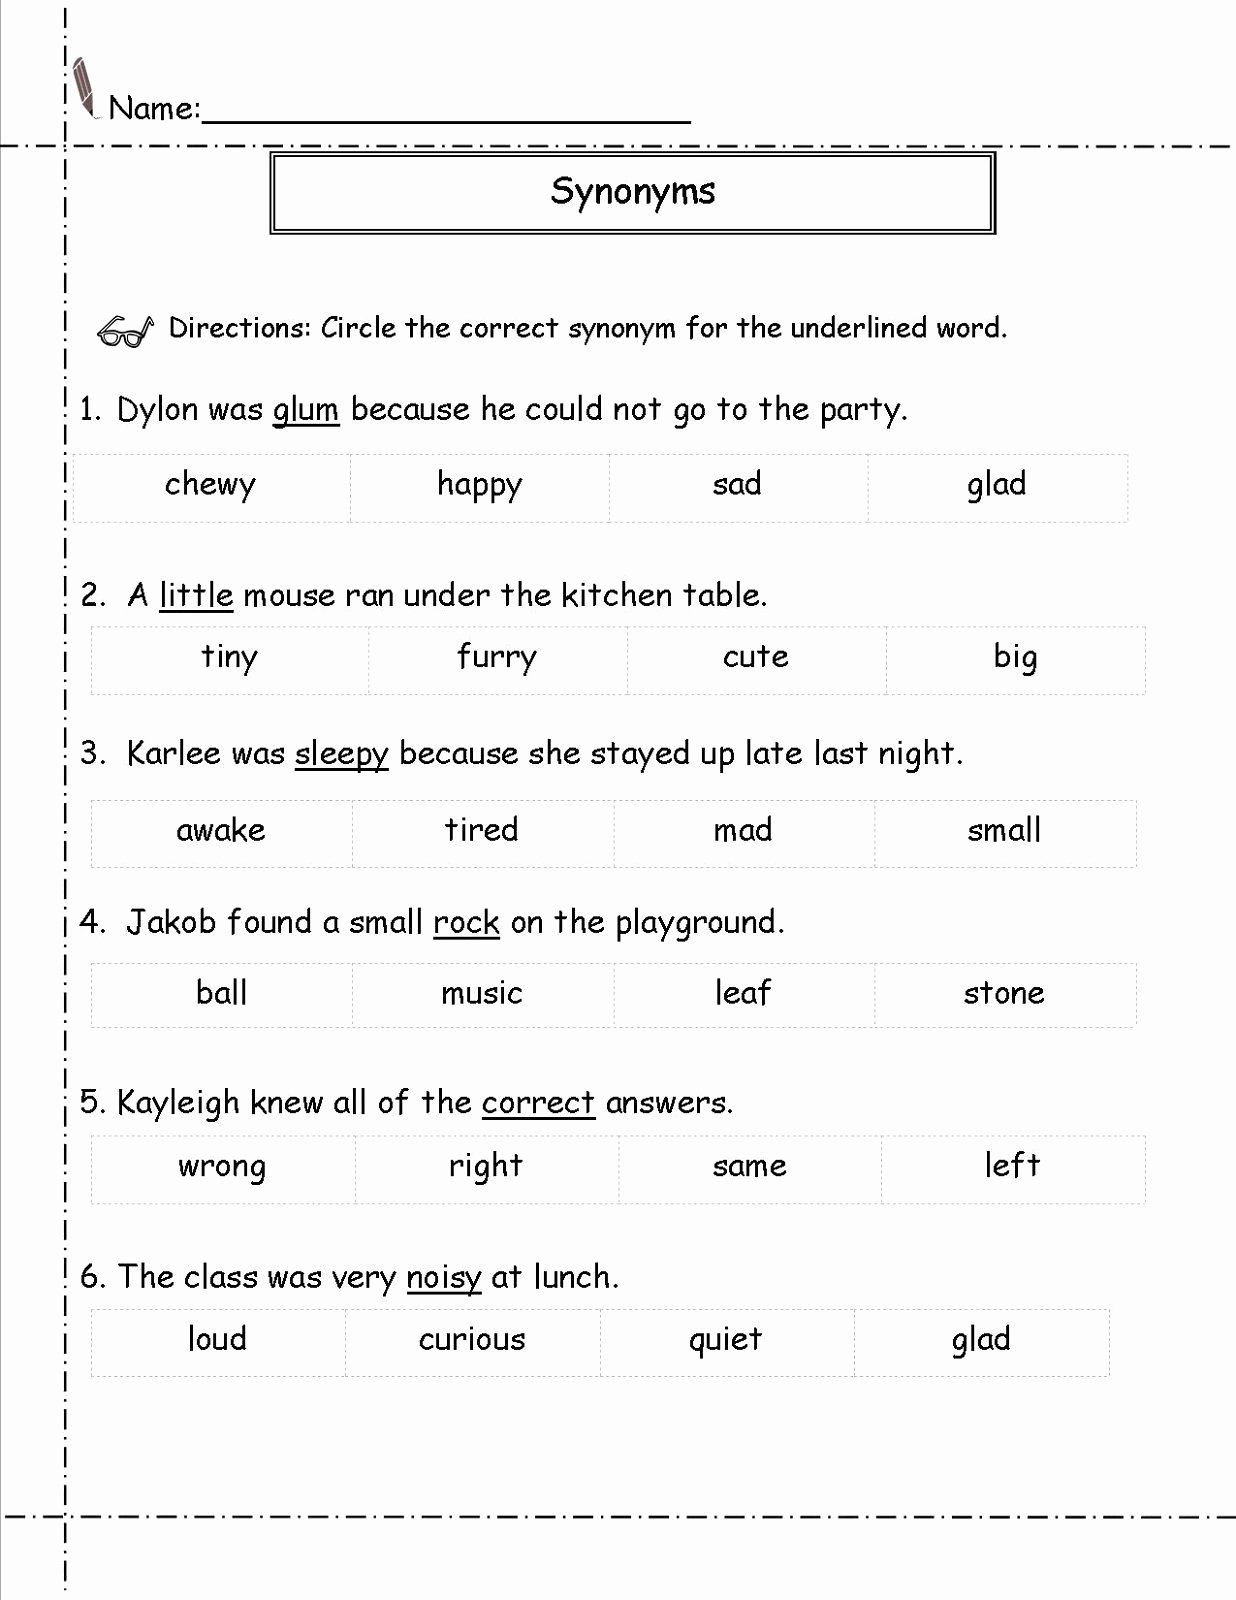 Synonyms Worksheets for Preschoolers Kids Second Grade Worksheets Synonym